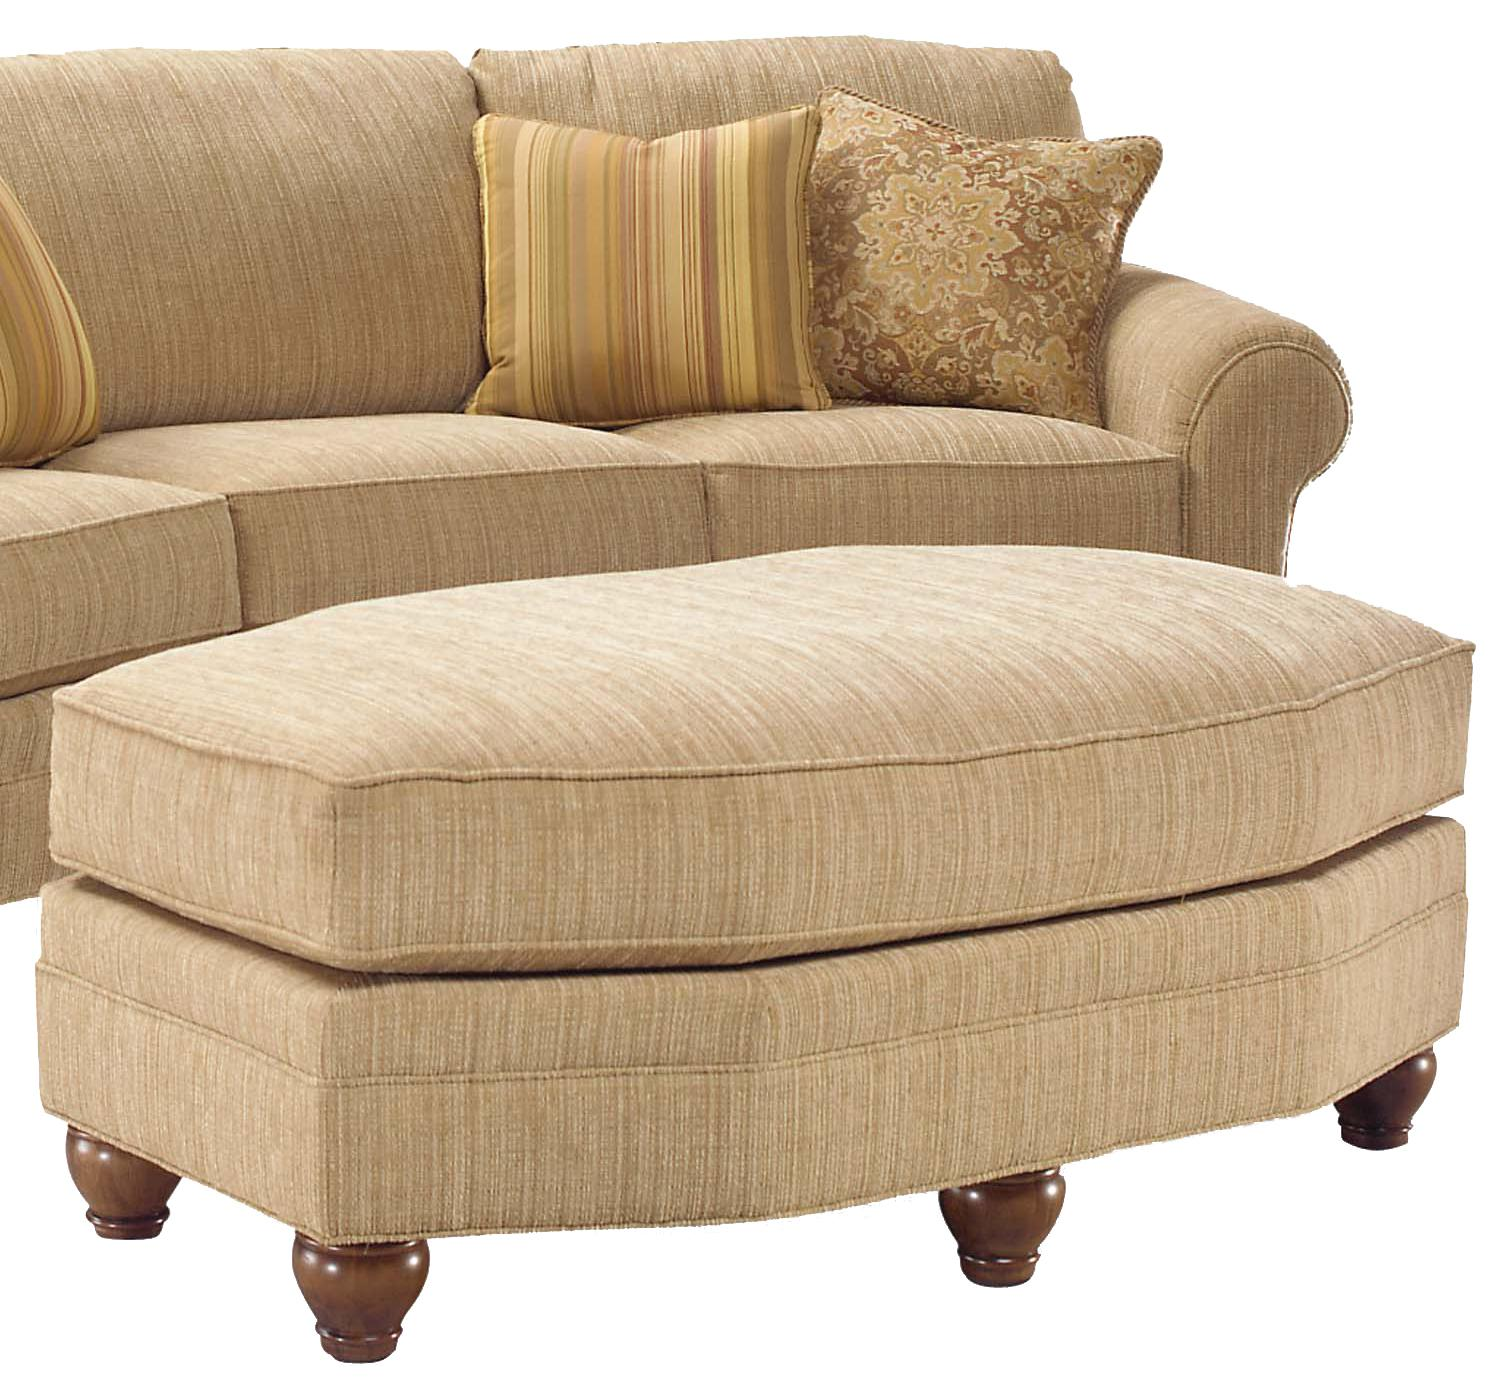 3768 Oval Ottoman by Fairfield at Stuckey Furniture